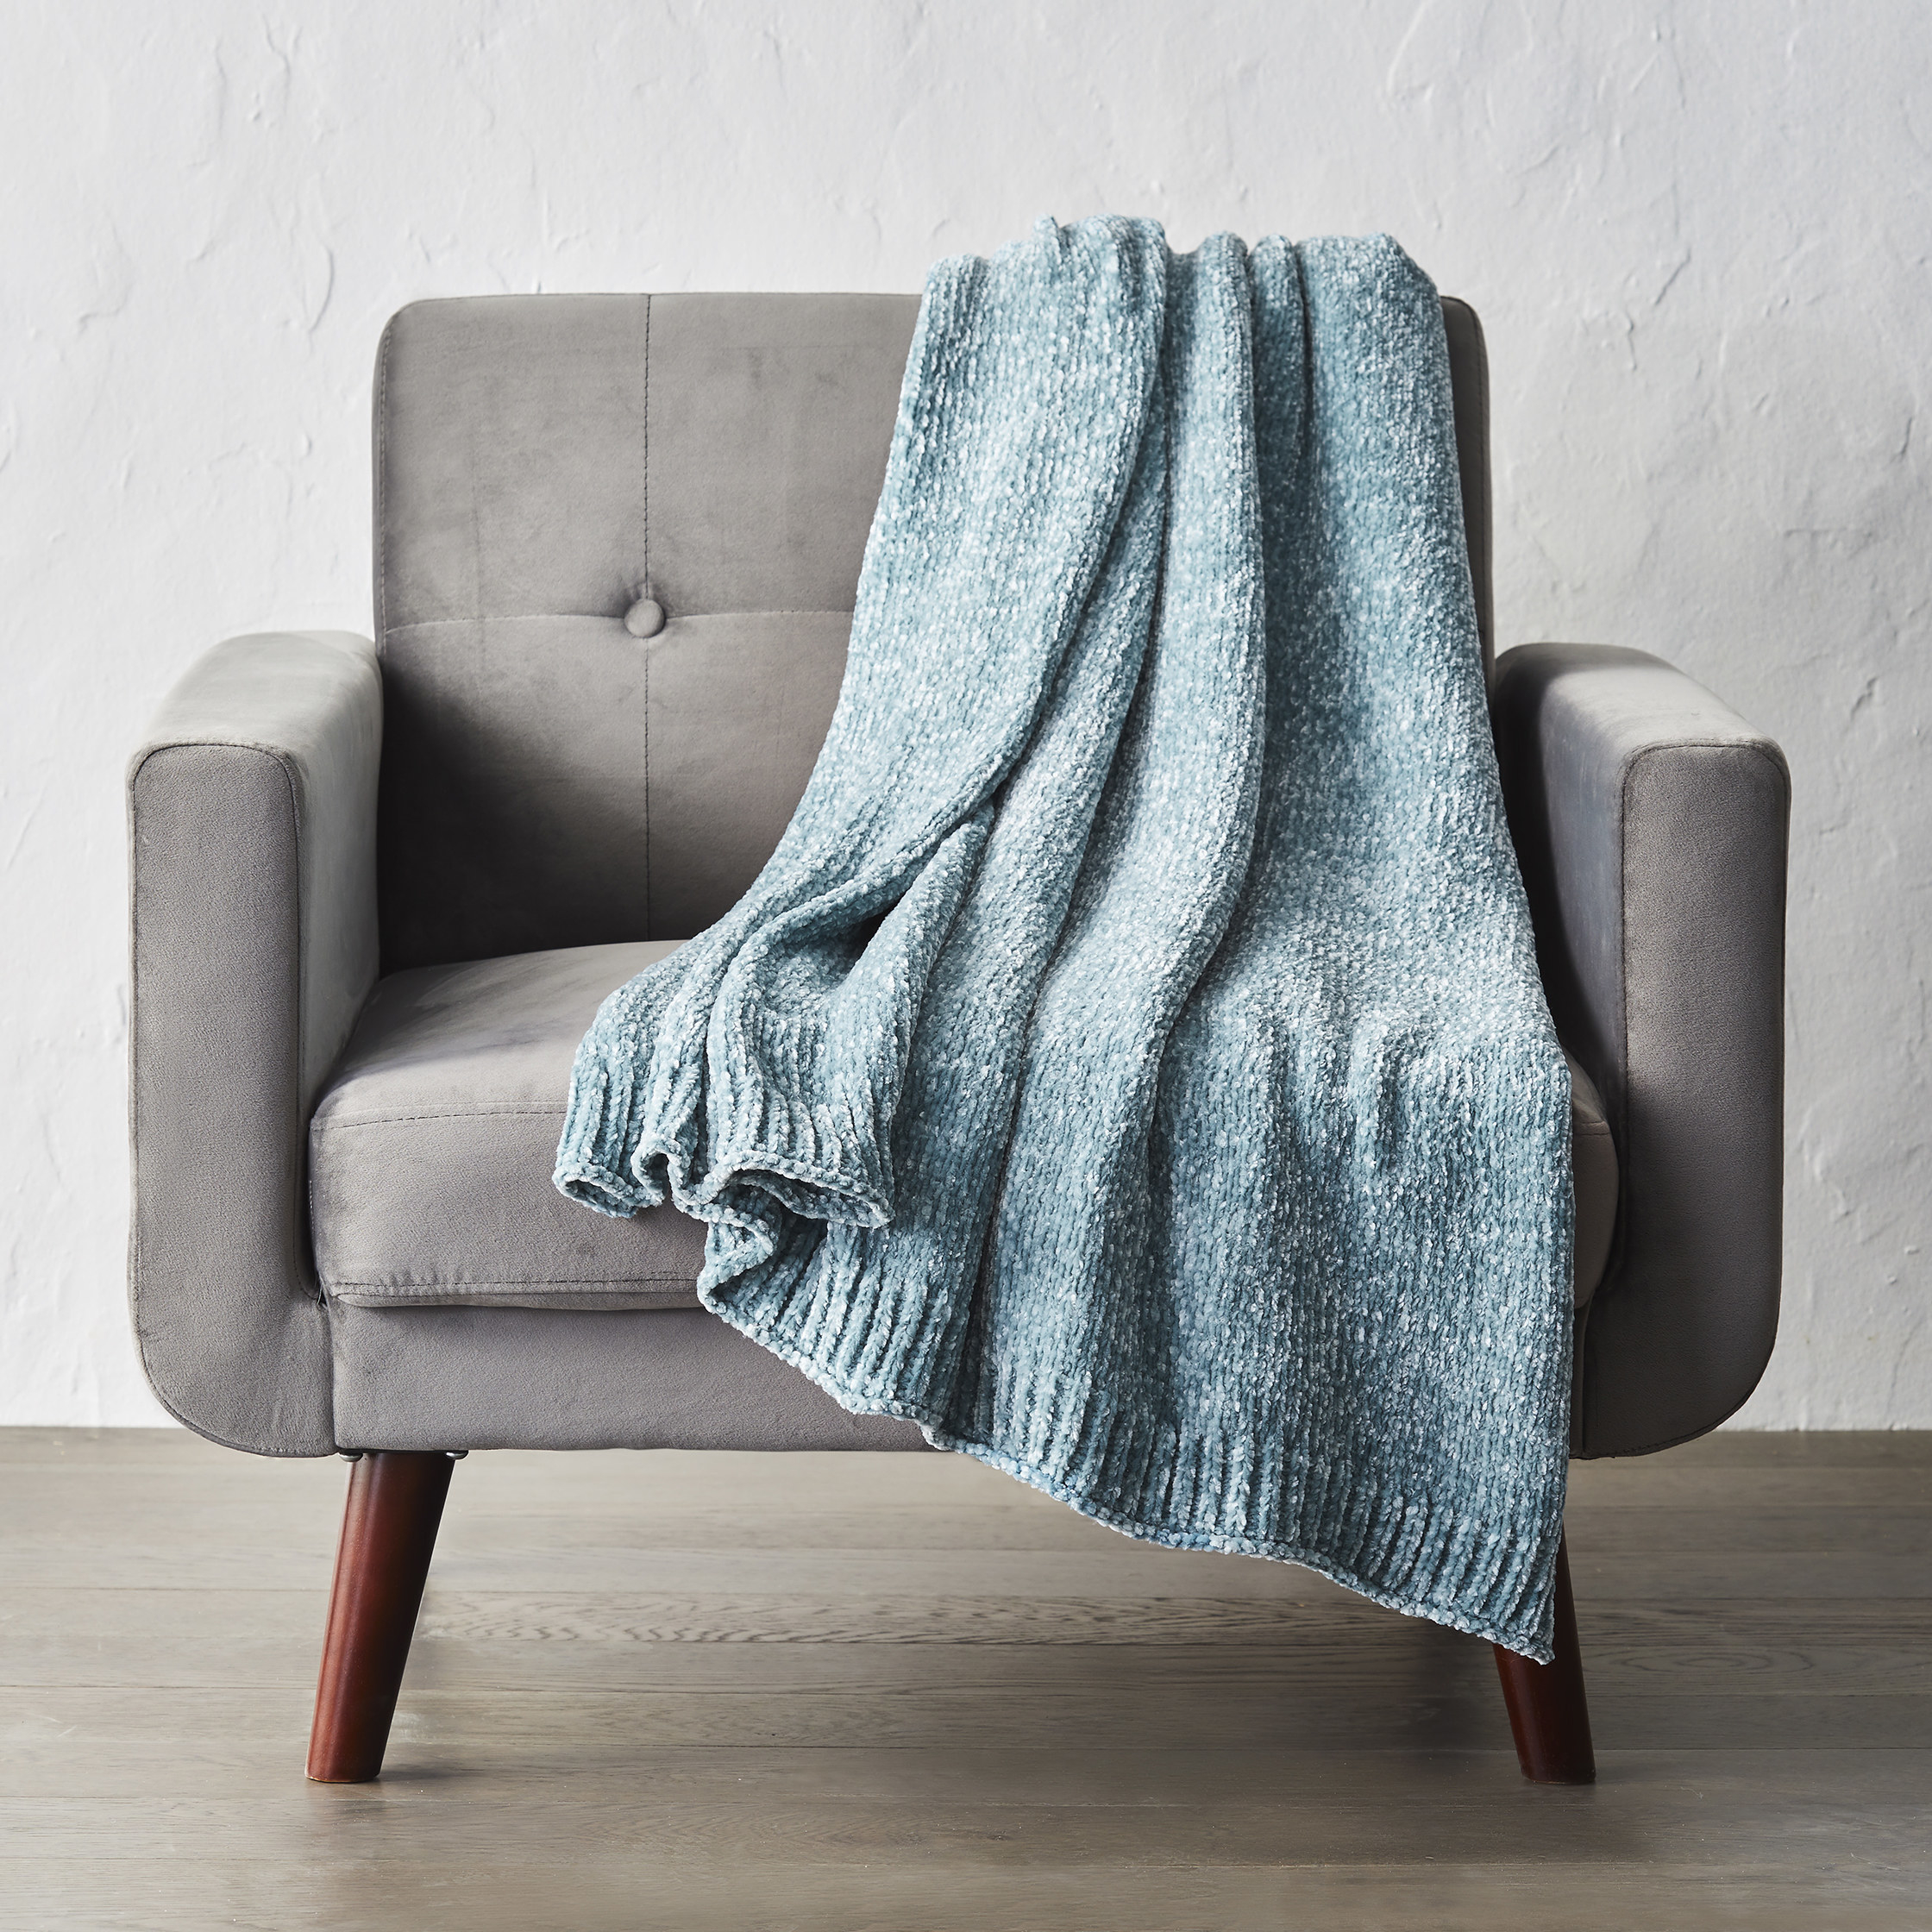 the throw in blue draped over a couch